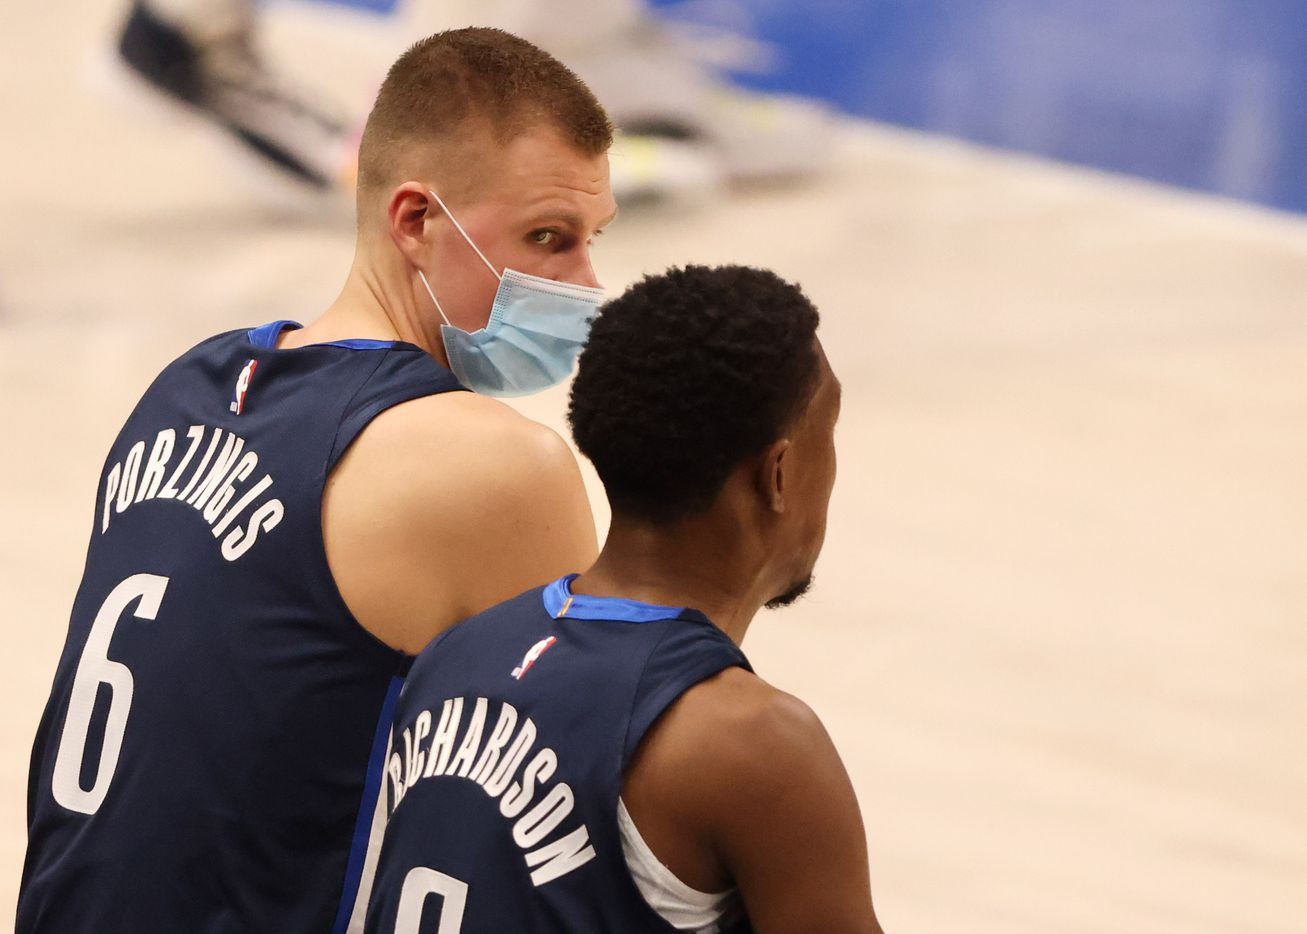 Dallas Mavericks forward Kristaps Porzingis (6) talks with Dallas Mavericks guard Josh Richardson (0) in a game against the Phoenix Suns during the second quarter of play at American Airlines Center on Monday, February 1, 2021in Dallas. (Vernon Bryant/The Dallas Morning News)